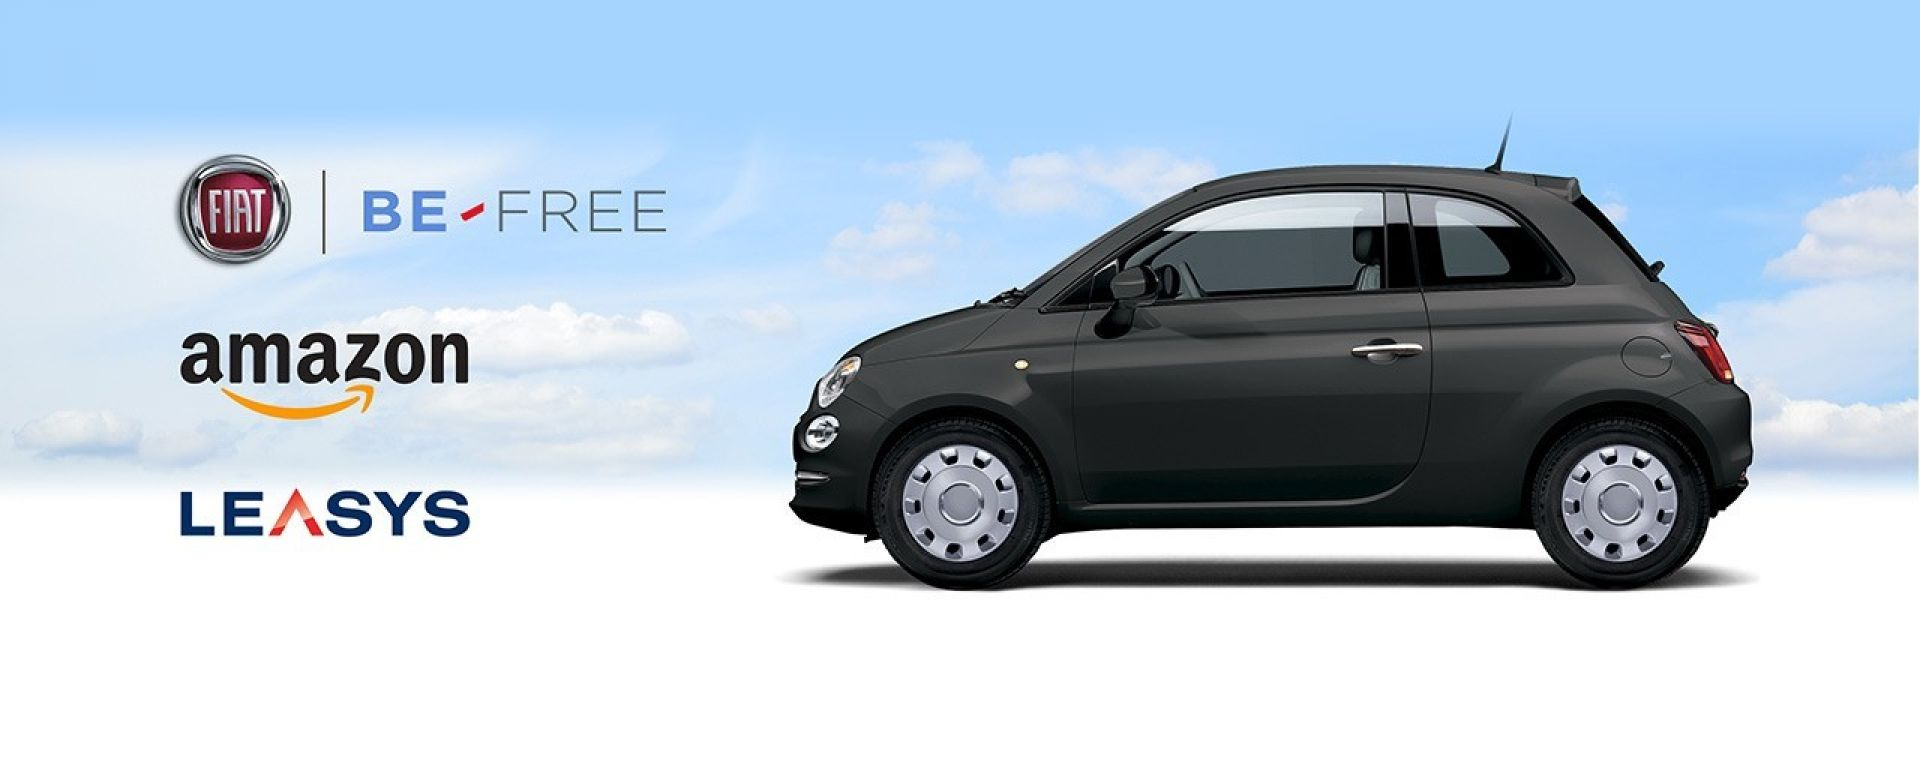 Fiat 500 noleggiabile su Amazon.it con la formula Be Free